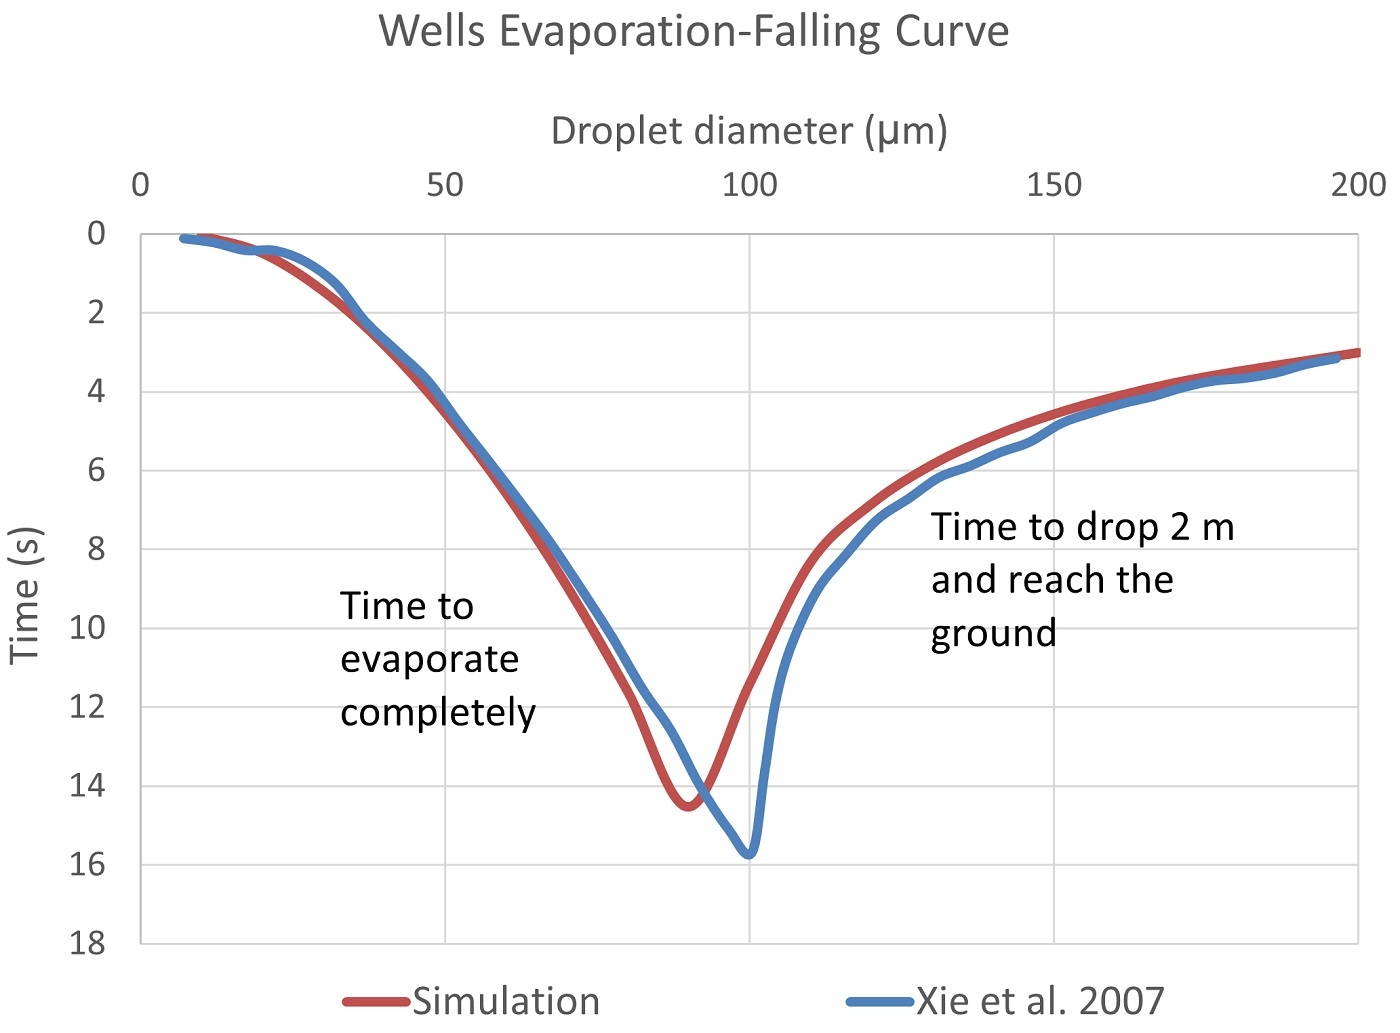 Comparison of evaporation and falling time between simulation and literature